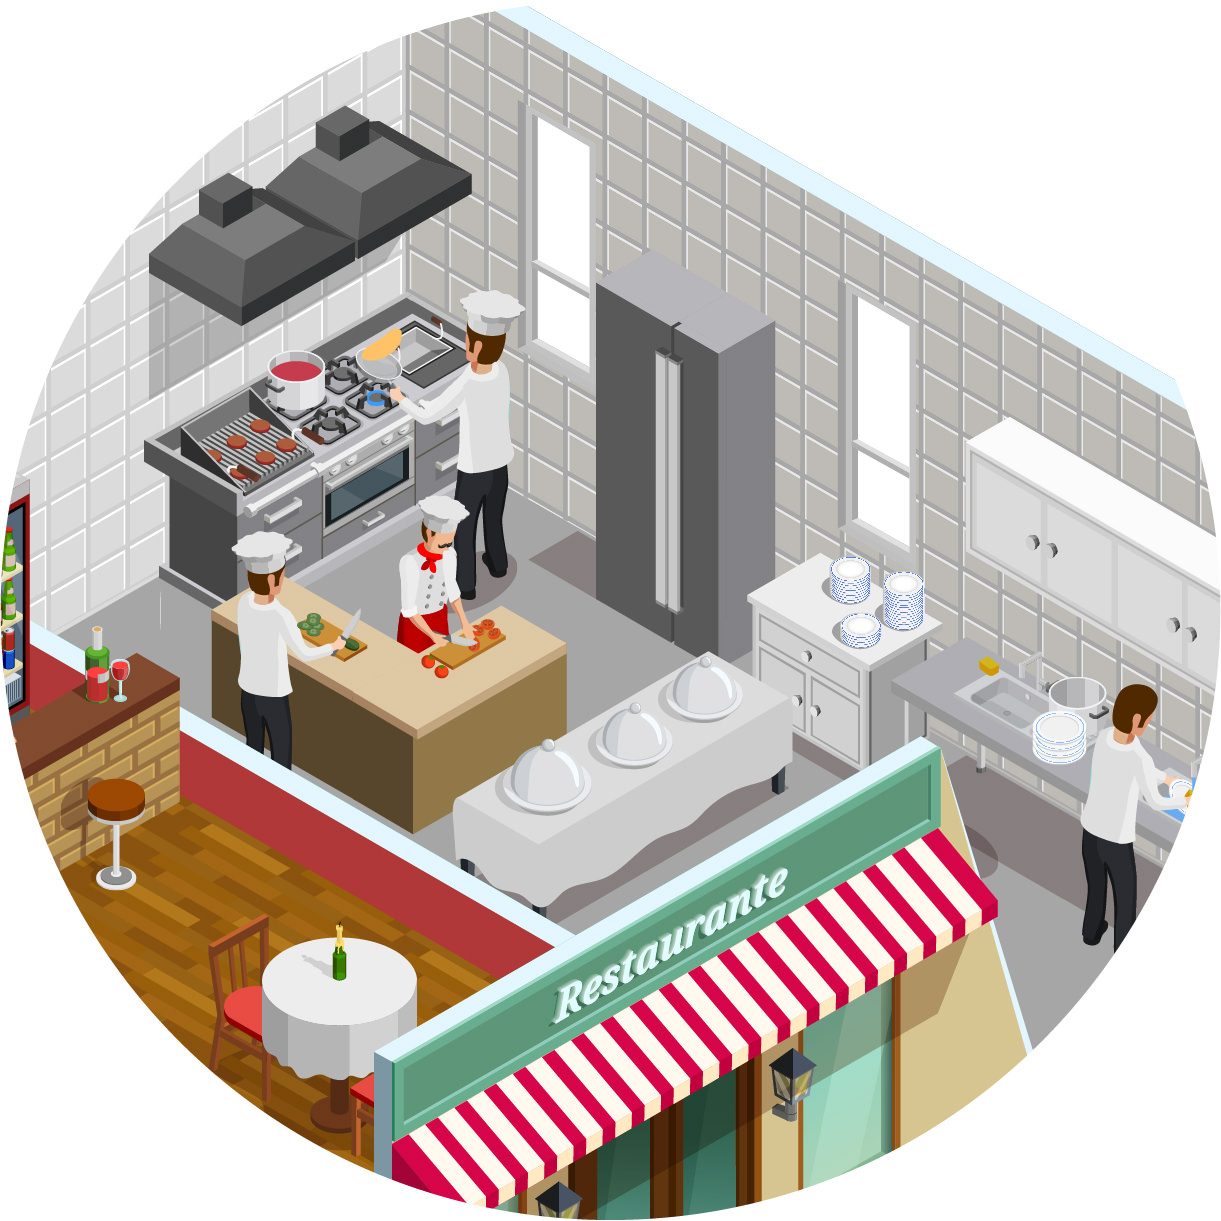 Top right detail of the restaurant illustration with sensor location dots in the kitchen